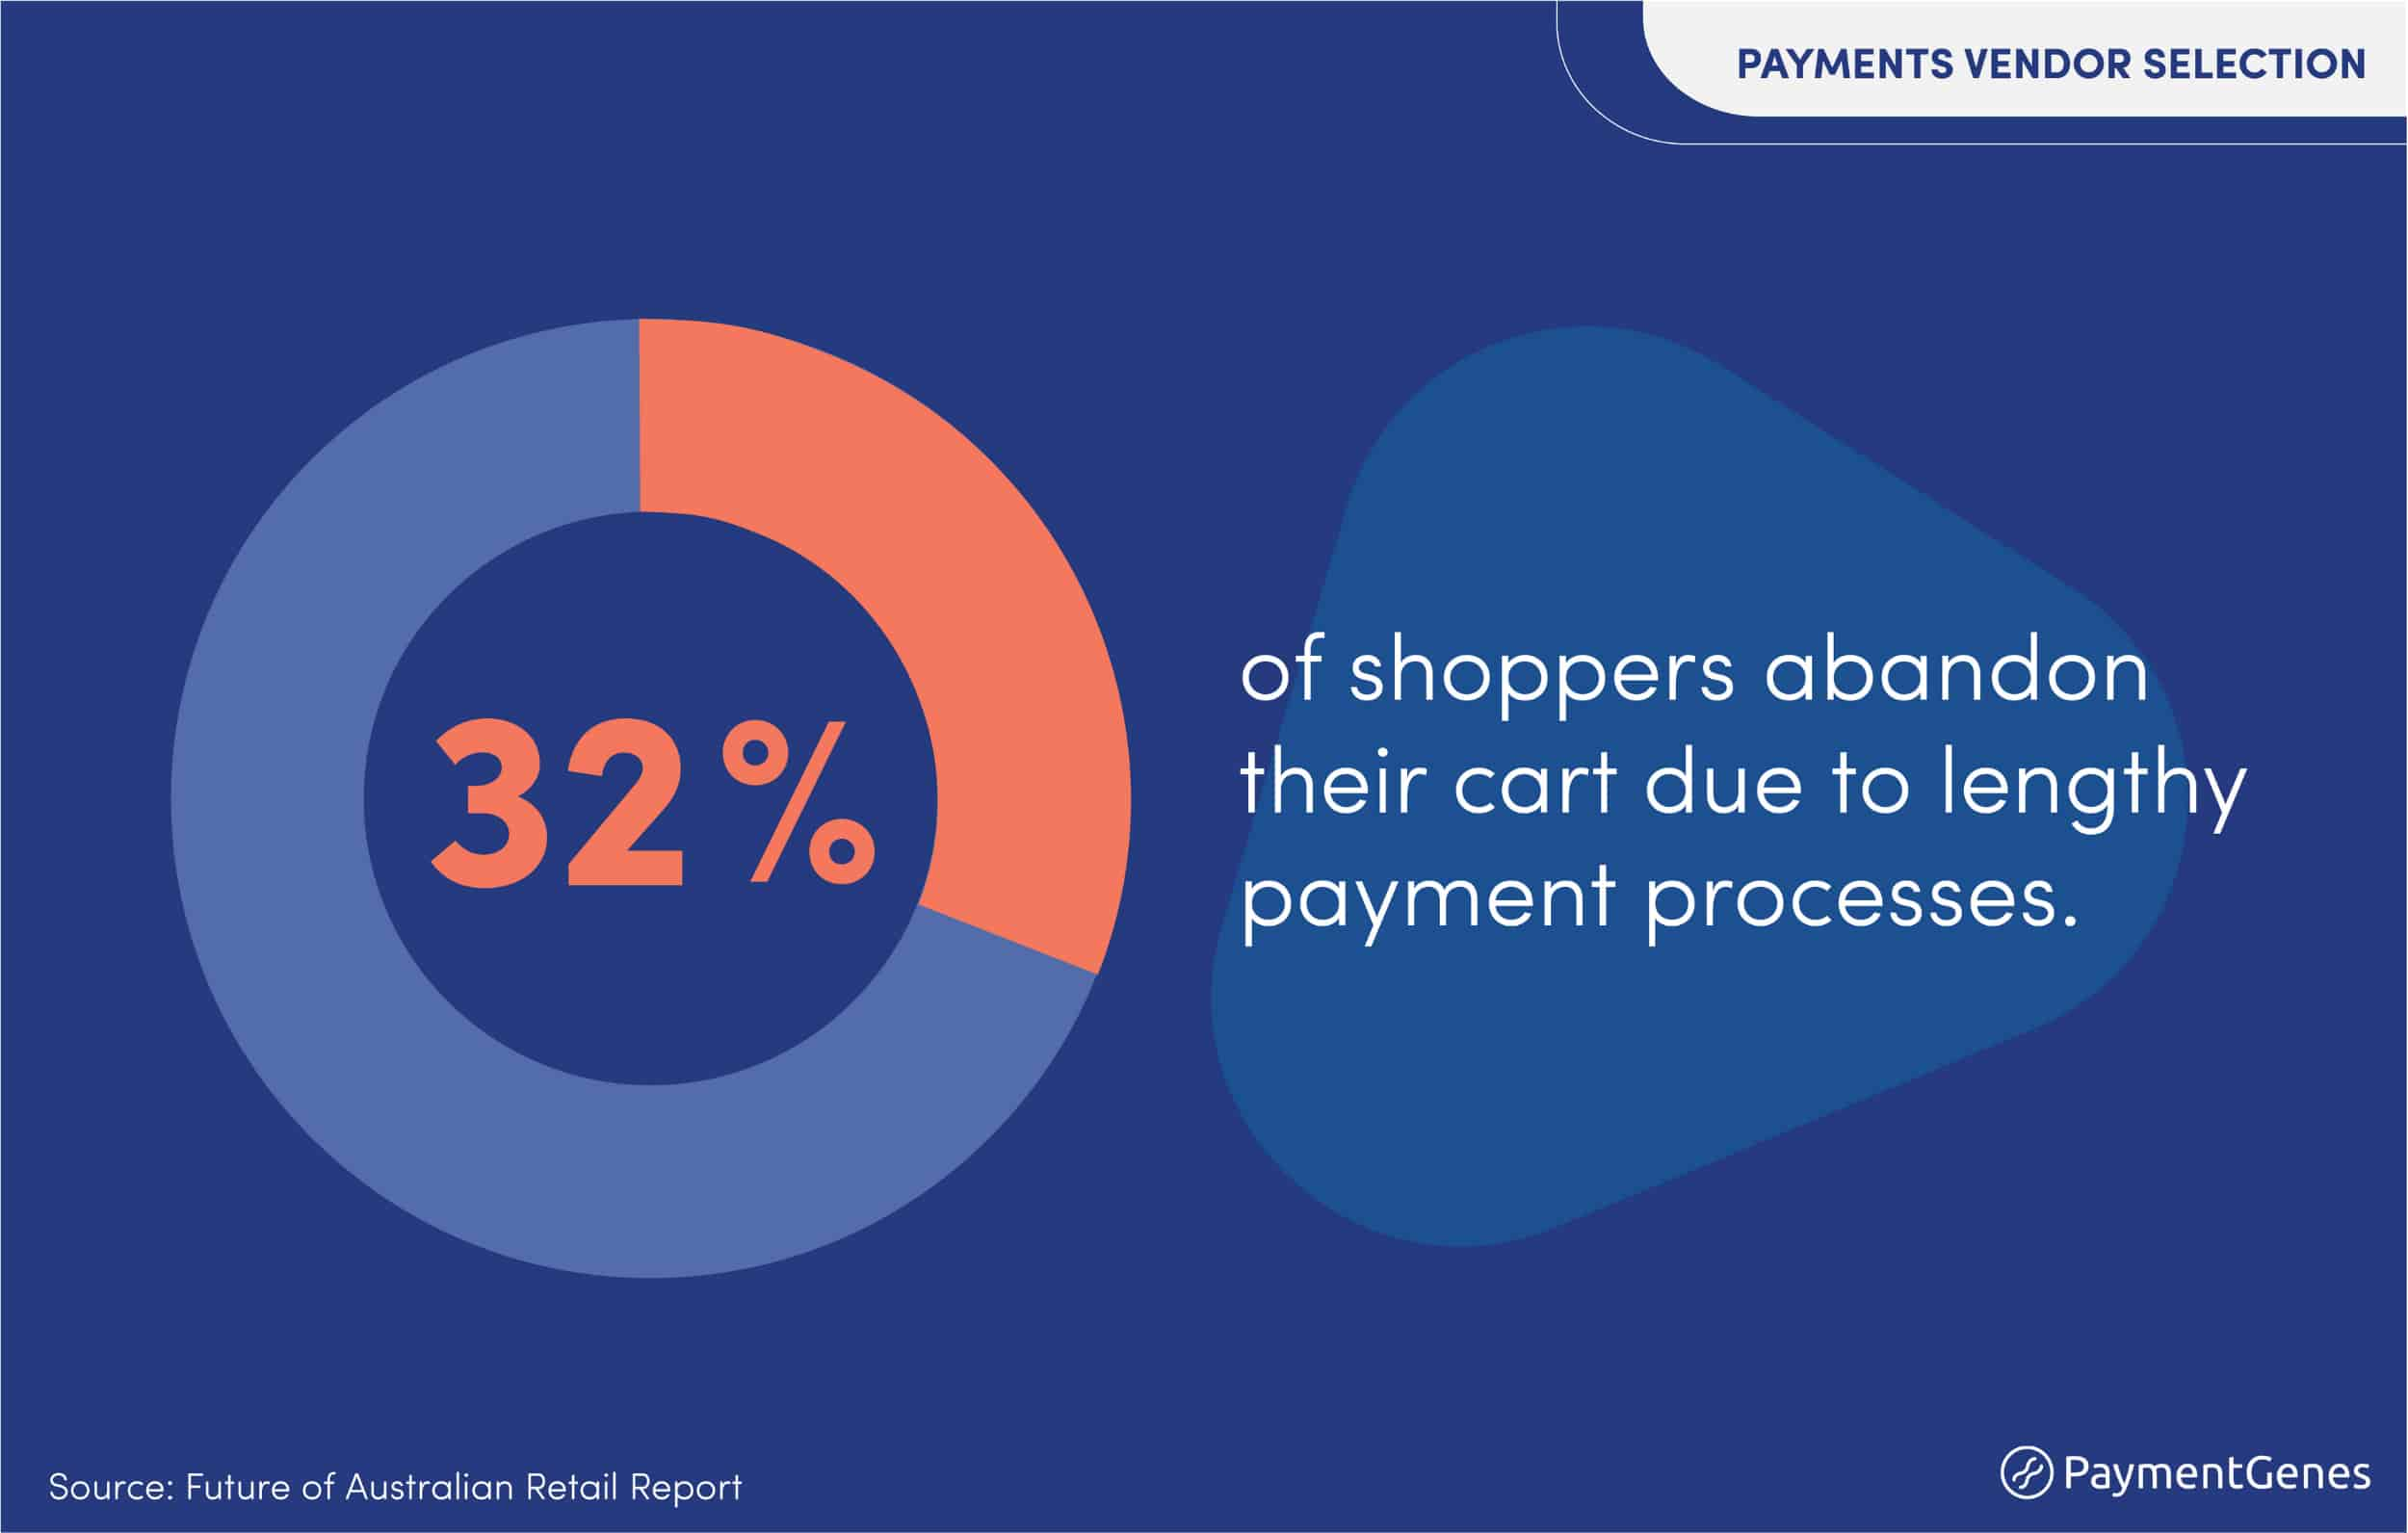 Reasons behind abandoned carts. Source:Future of Australian retail report